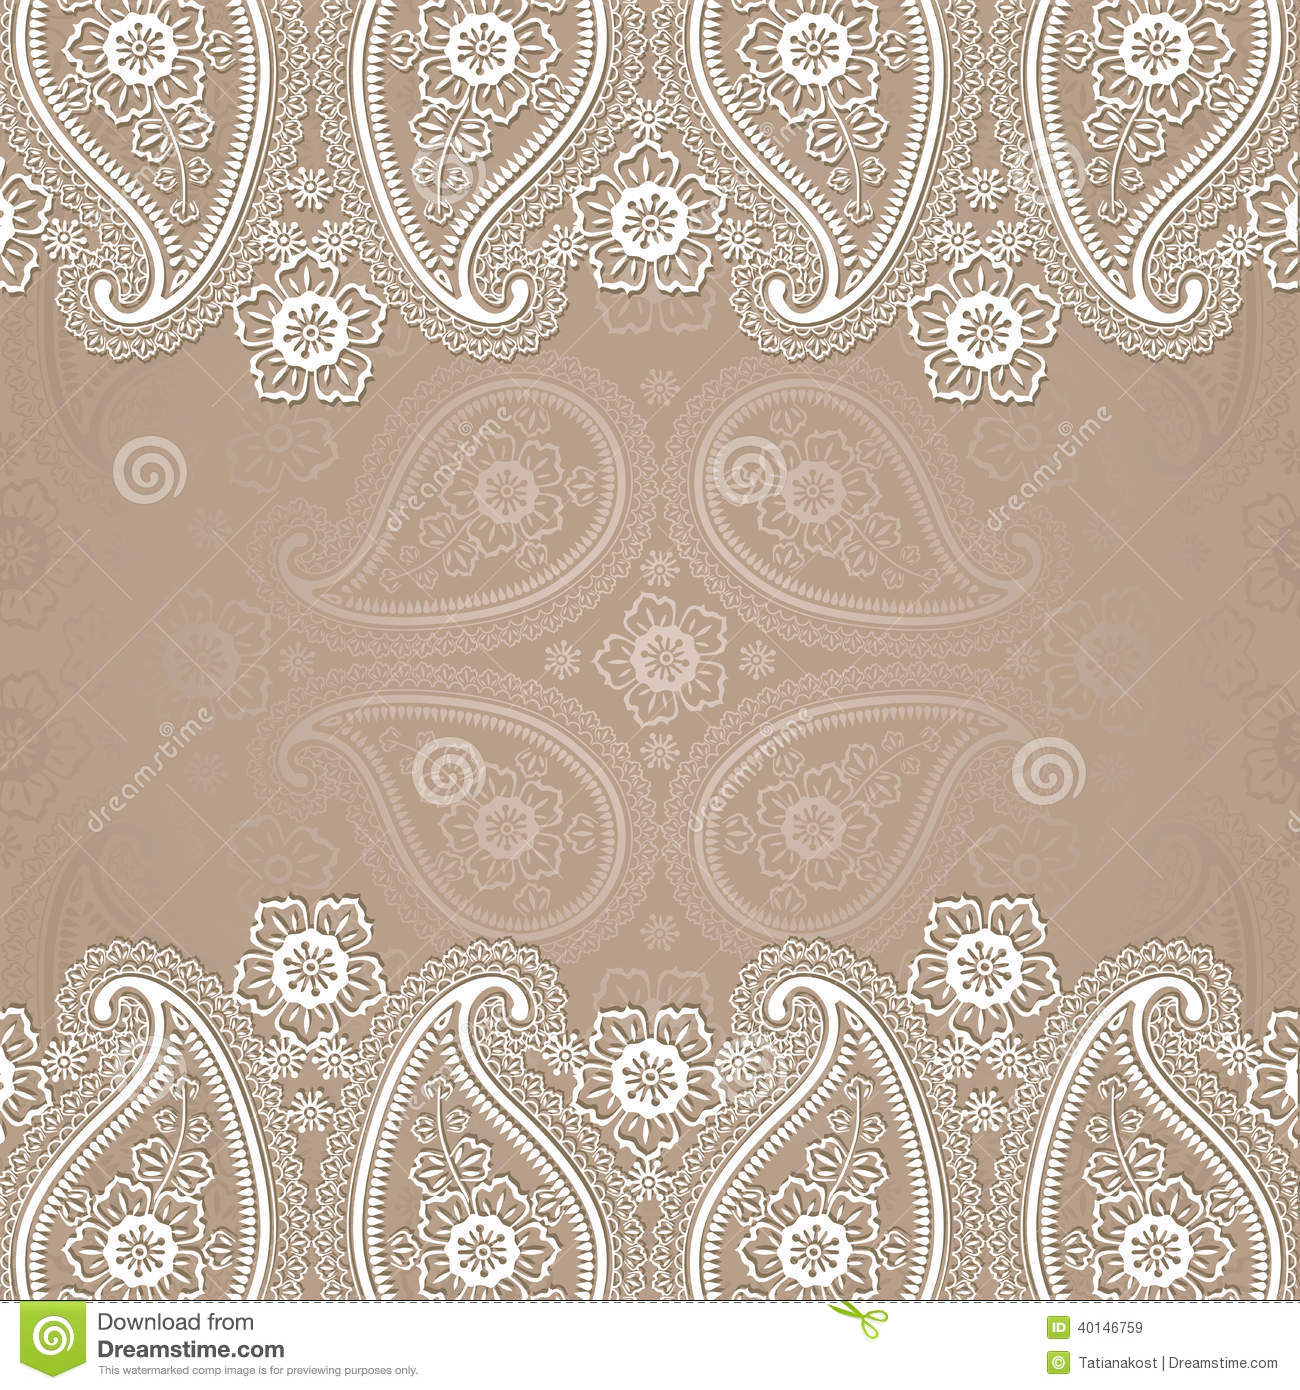 Paisley Border Lace Design Template Stock Vector - Illustration of ...